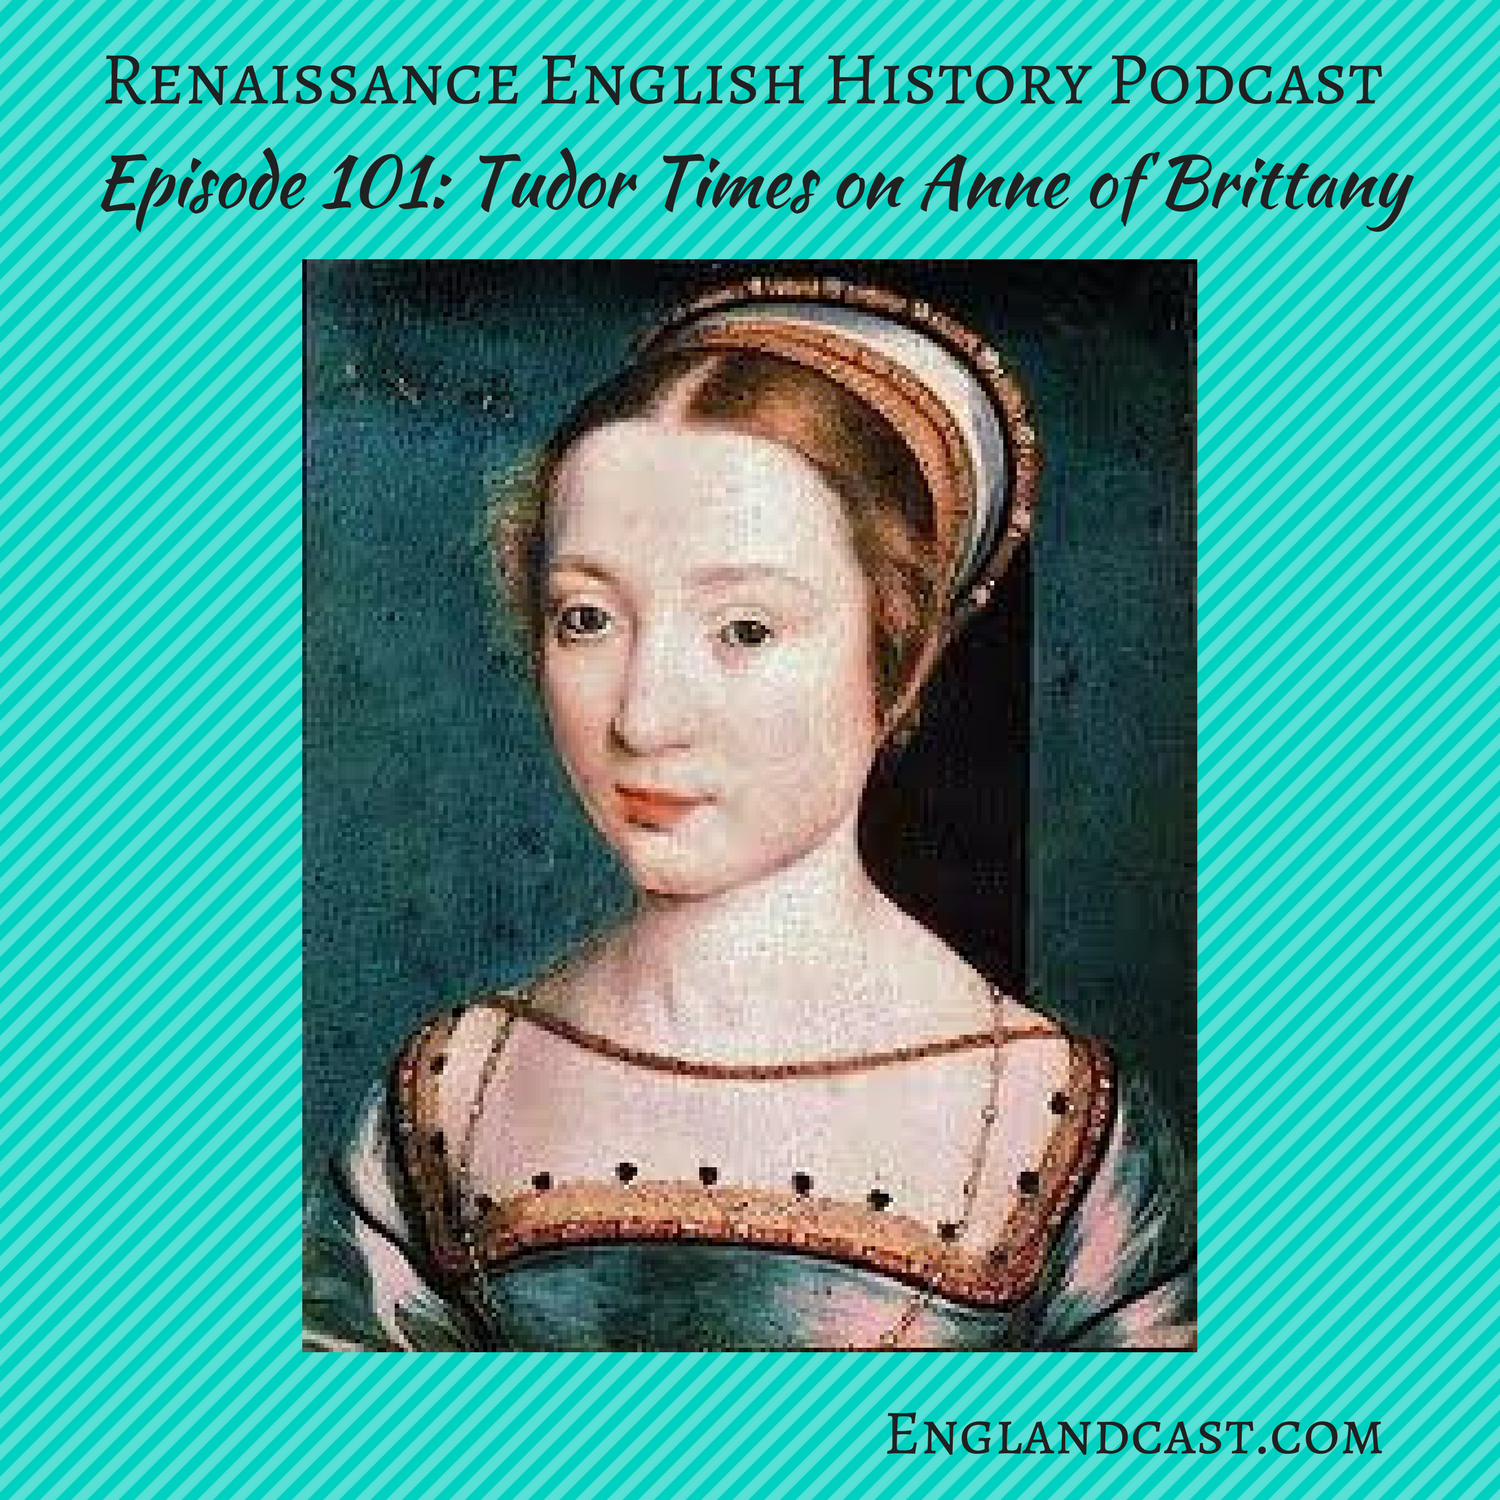 Episode 101: Tudor Times on Anne of Brittany